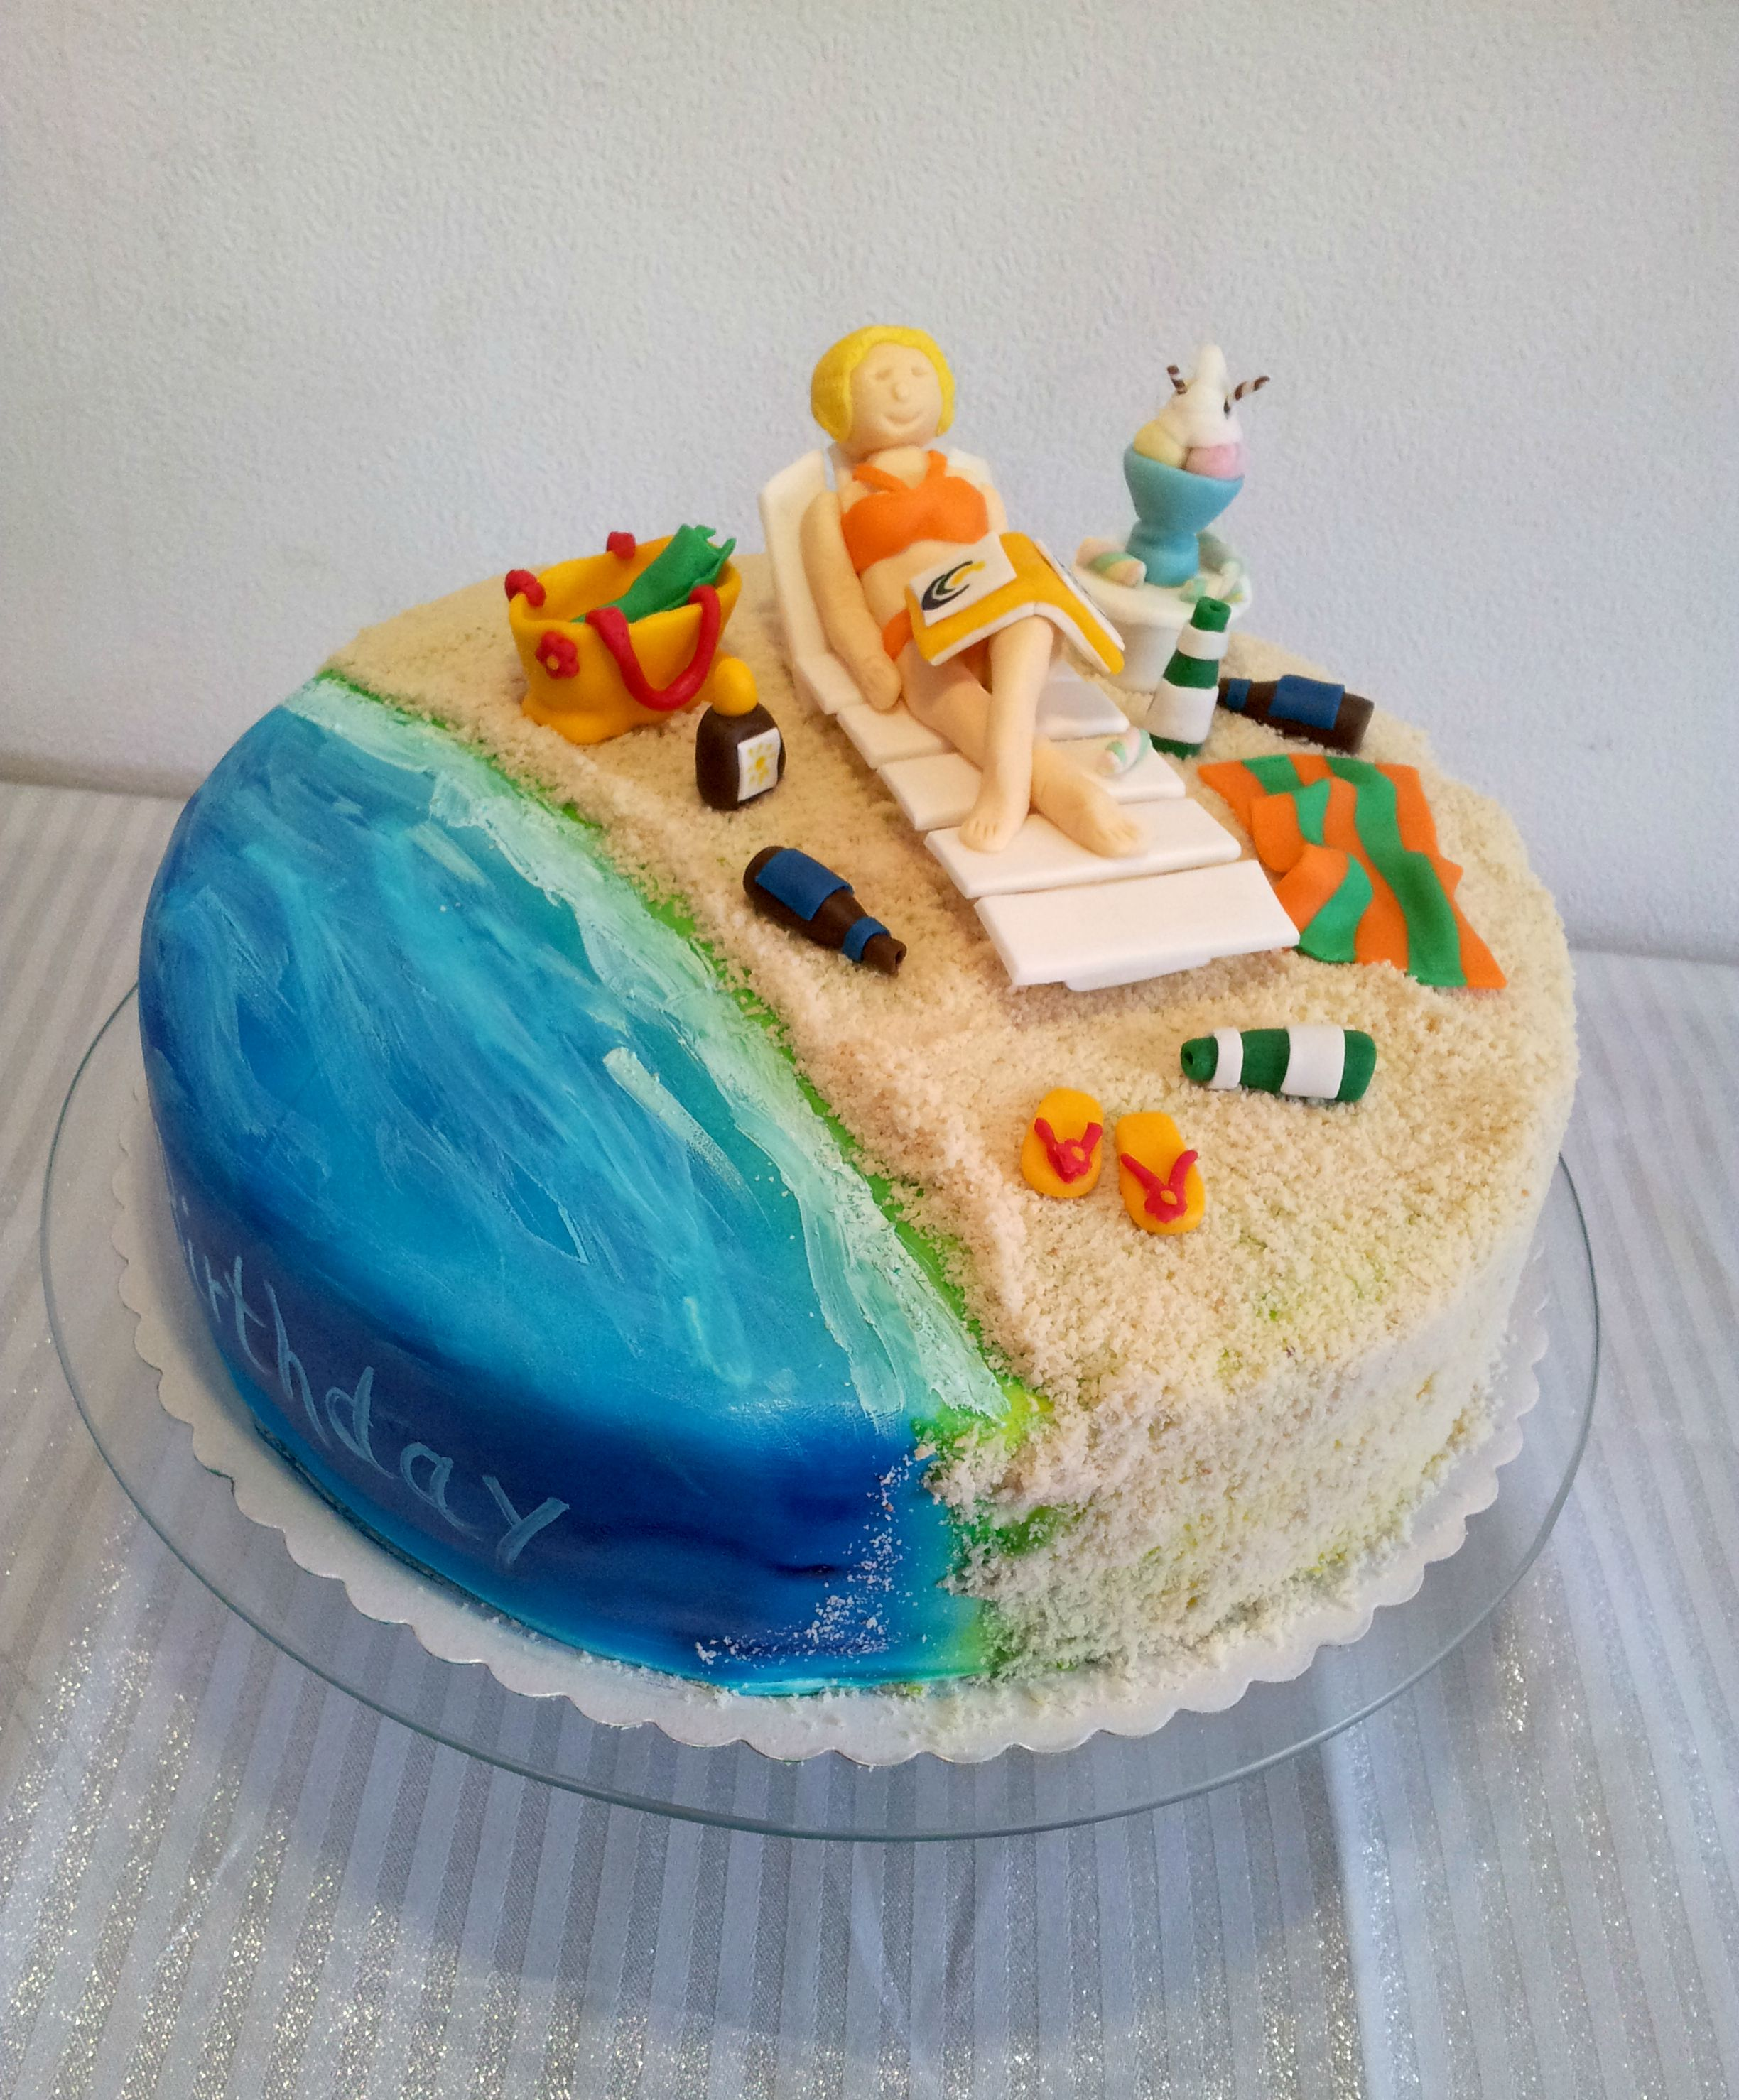 Edible Beach Themed Cake Decorations: Holiday Themed Cake Decorations